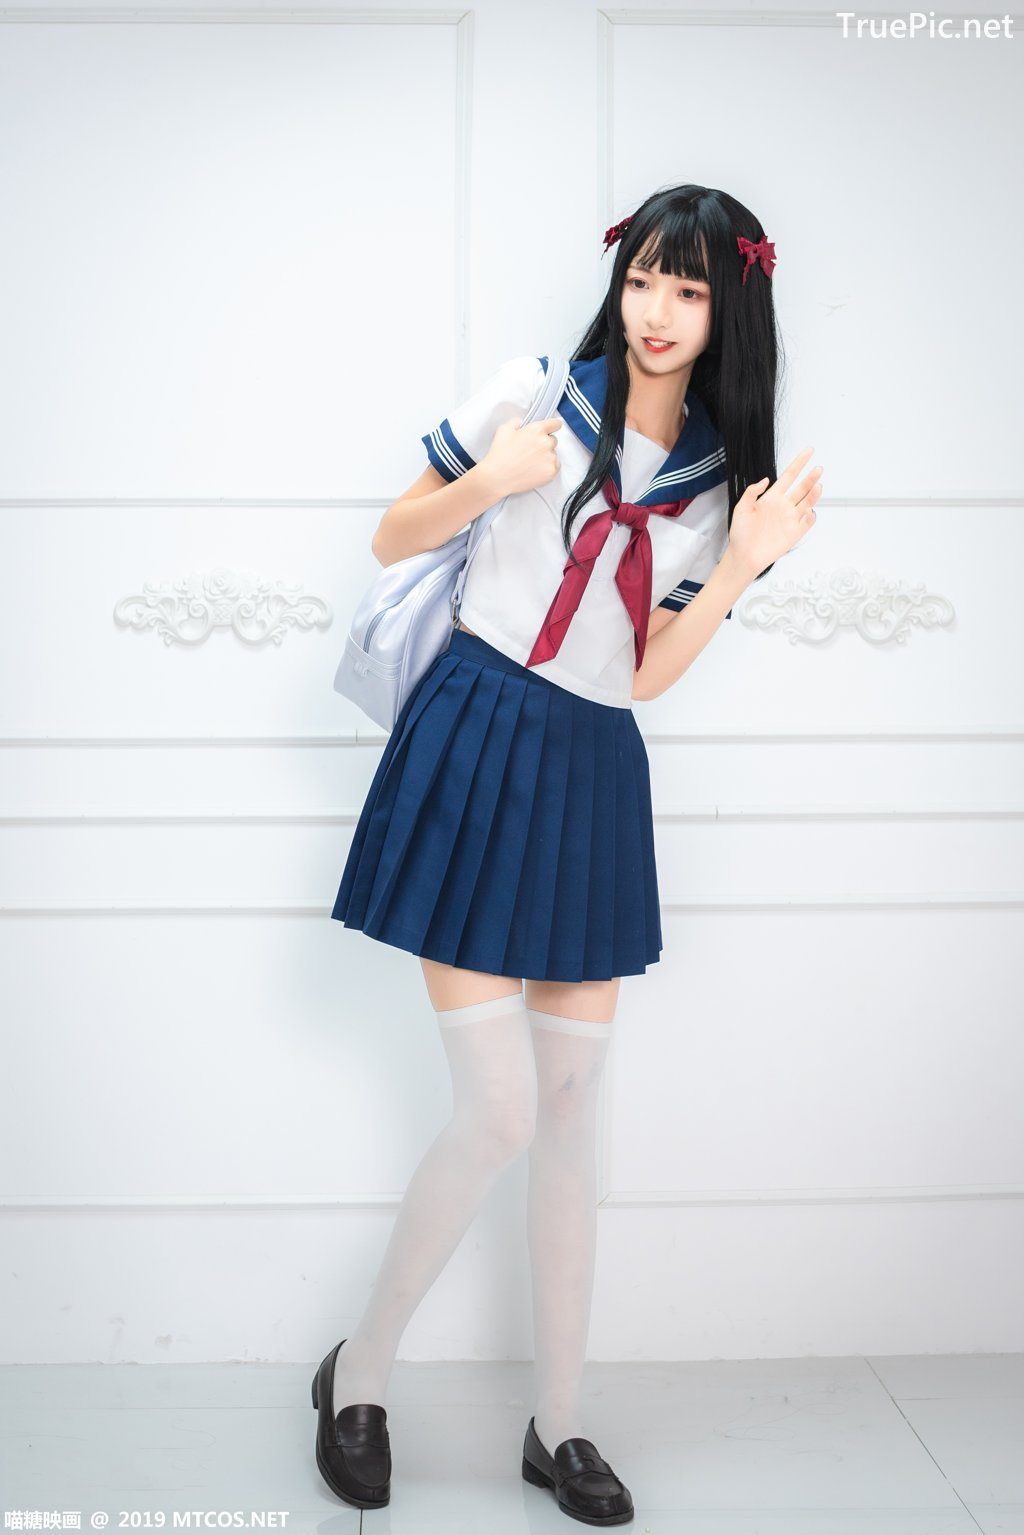 Image-MTCos-喵糖映画-Vol-012–Chinese-Pretty-Model-Cute-School-Girl-With-Sailor-Dress-TruePic.net- Picture-9